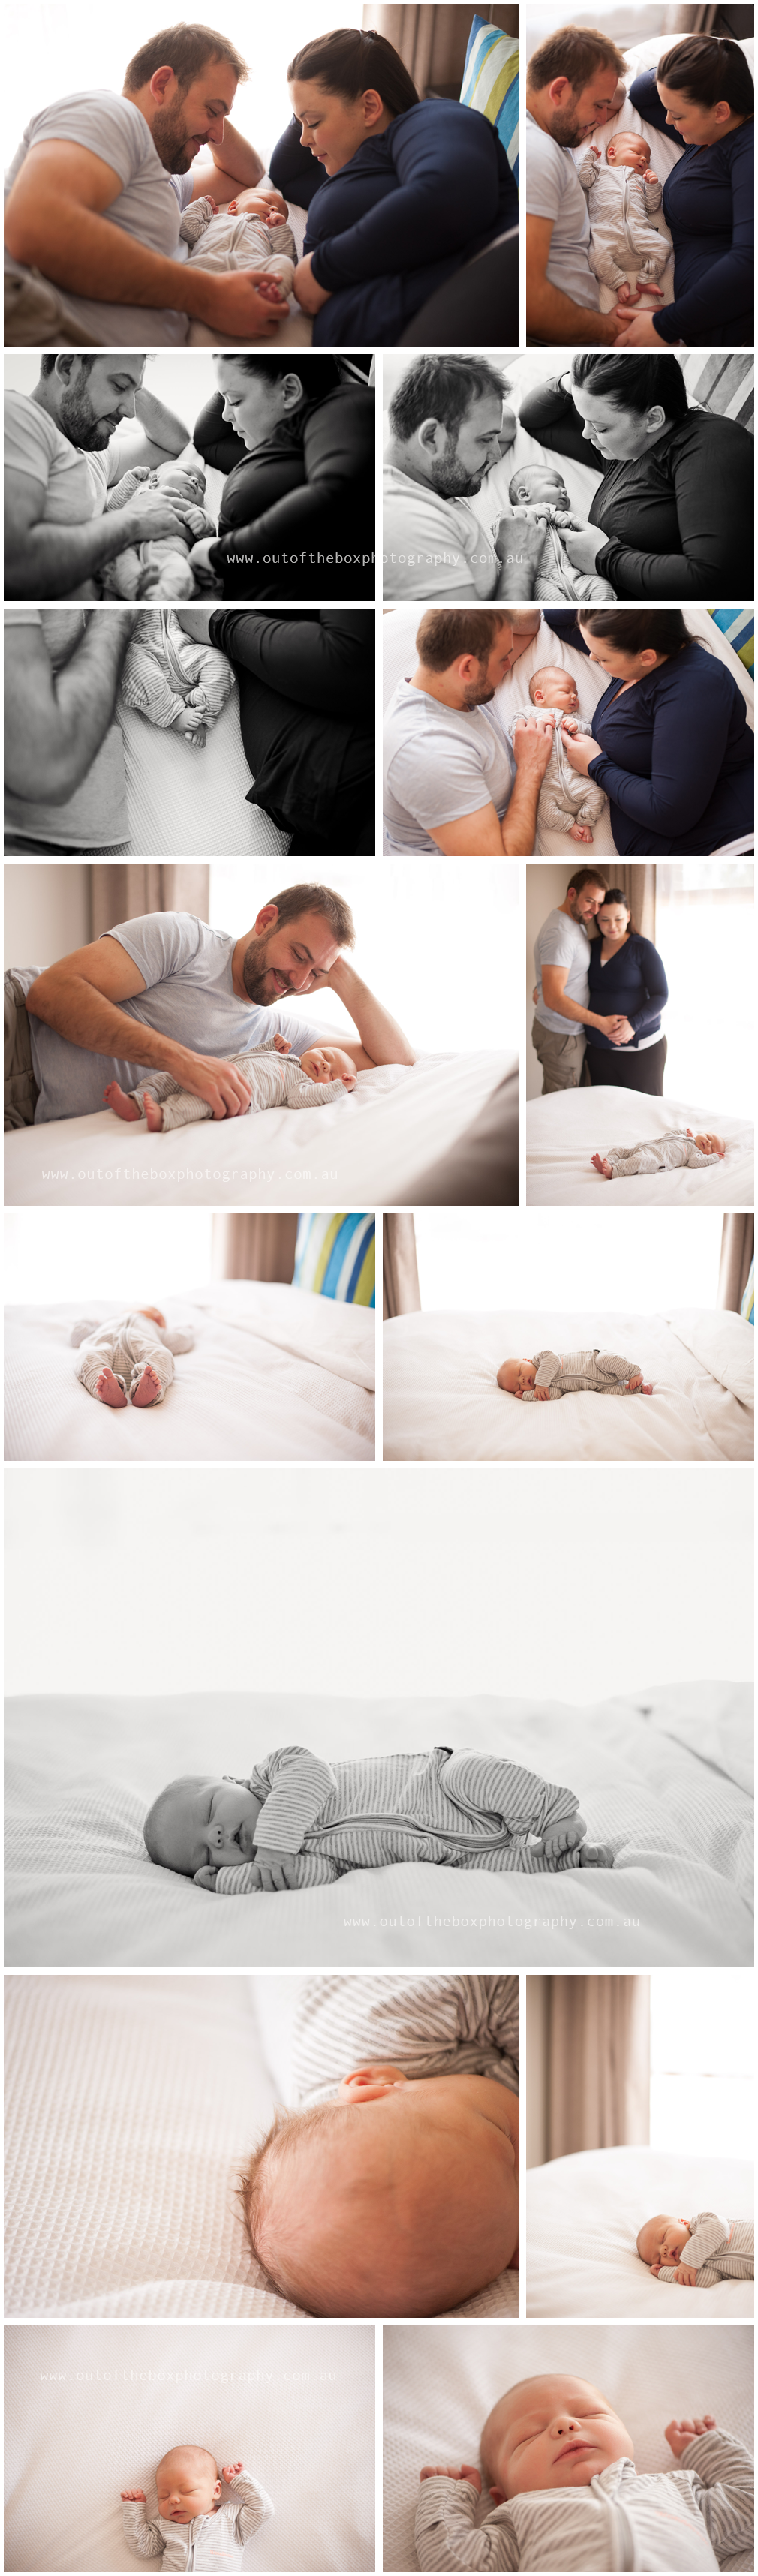 Newborn baby boy at home with his family